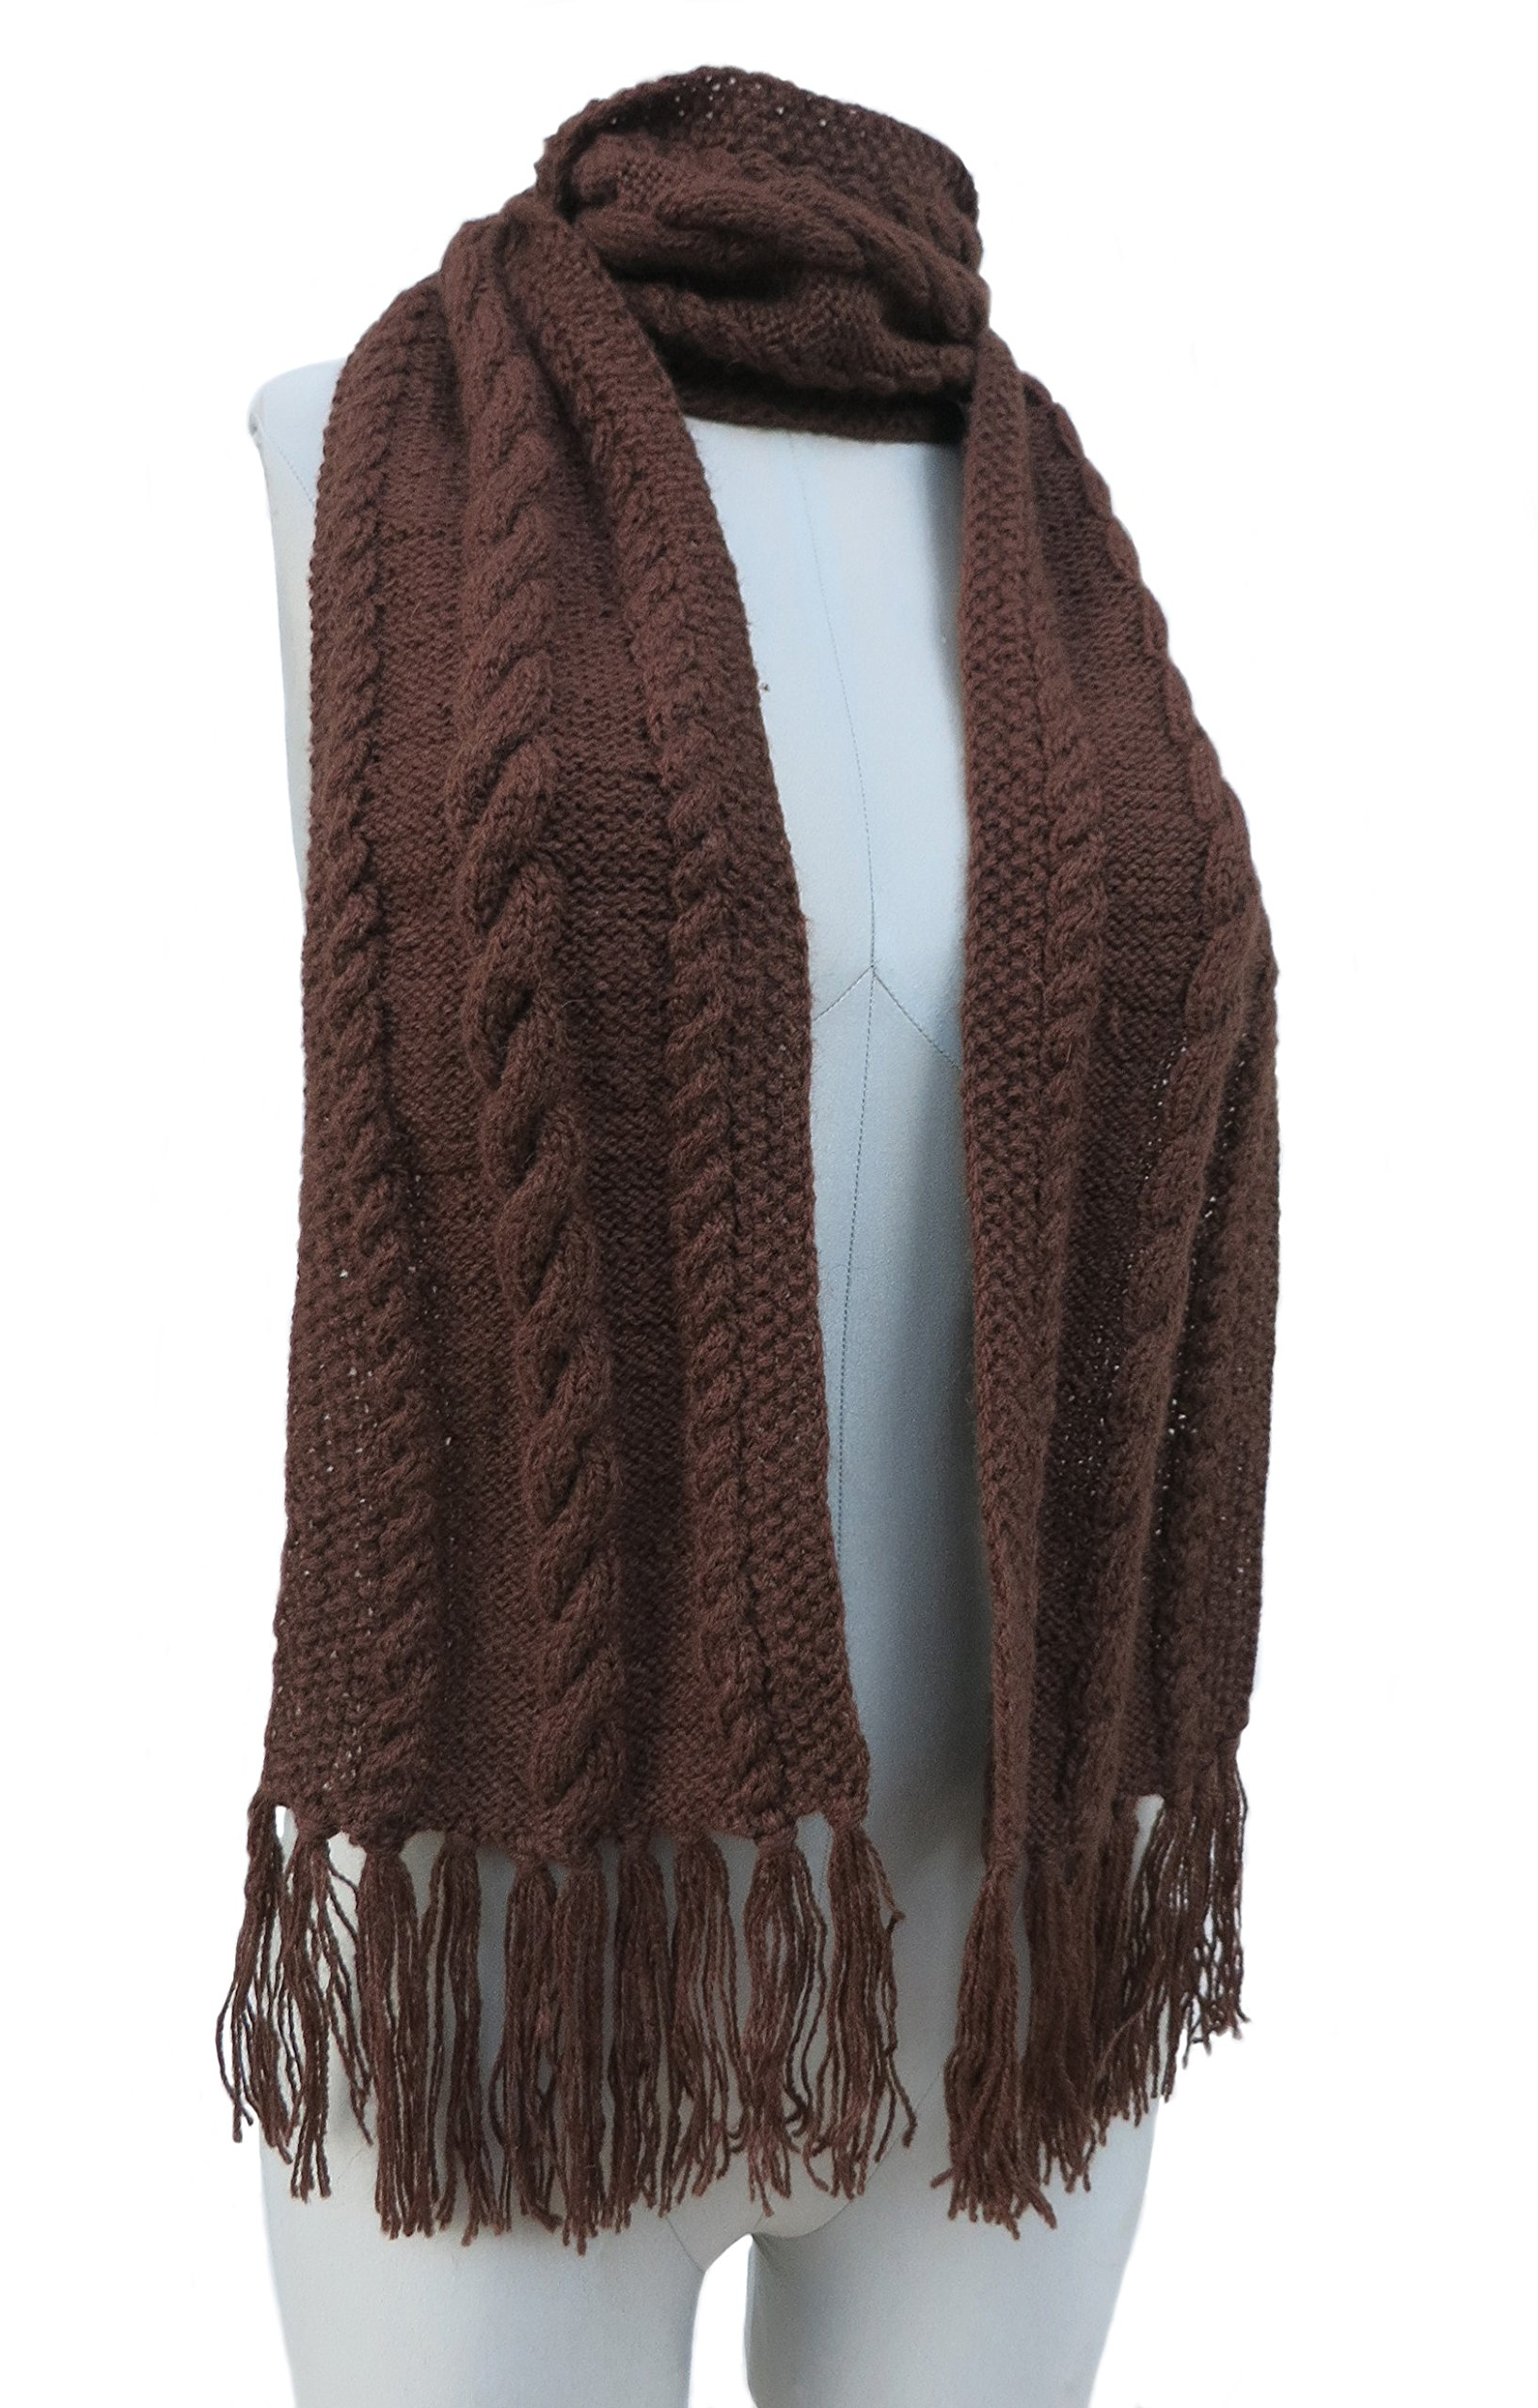 Knitted 100% by Hand Scarf - Cable Design in PURE ALPACA (CUSTOM MADE) by BARBERY Alpaca Accessories